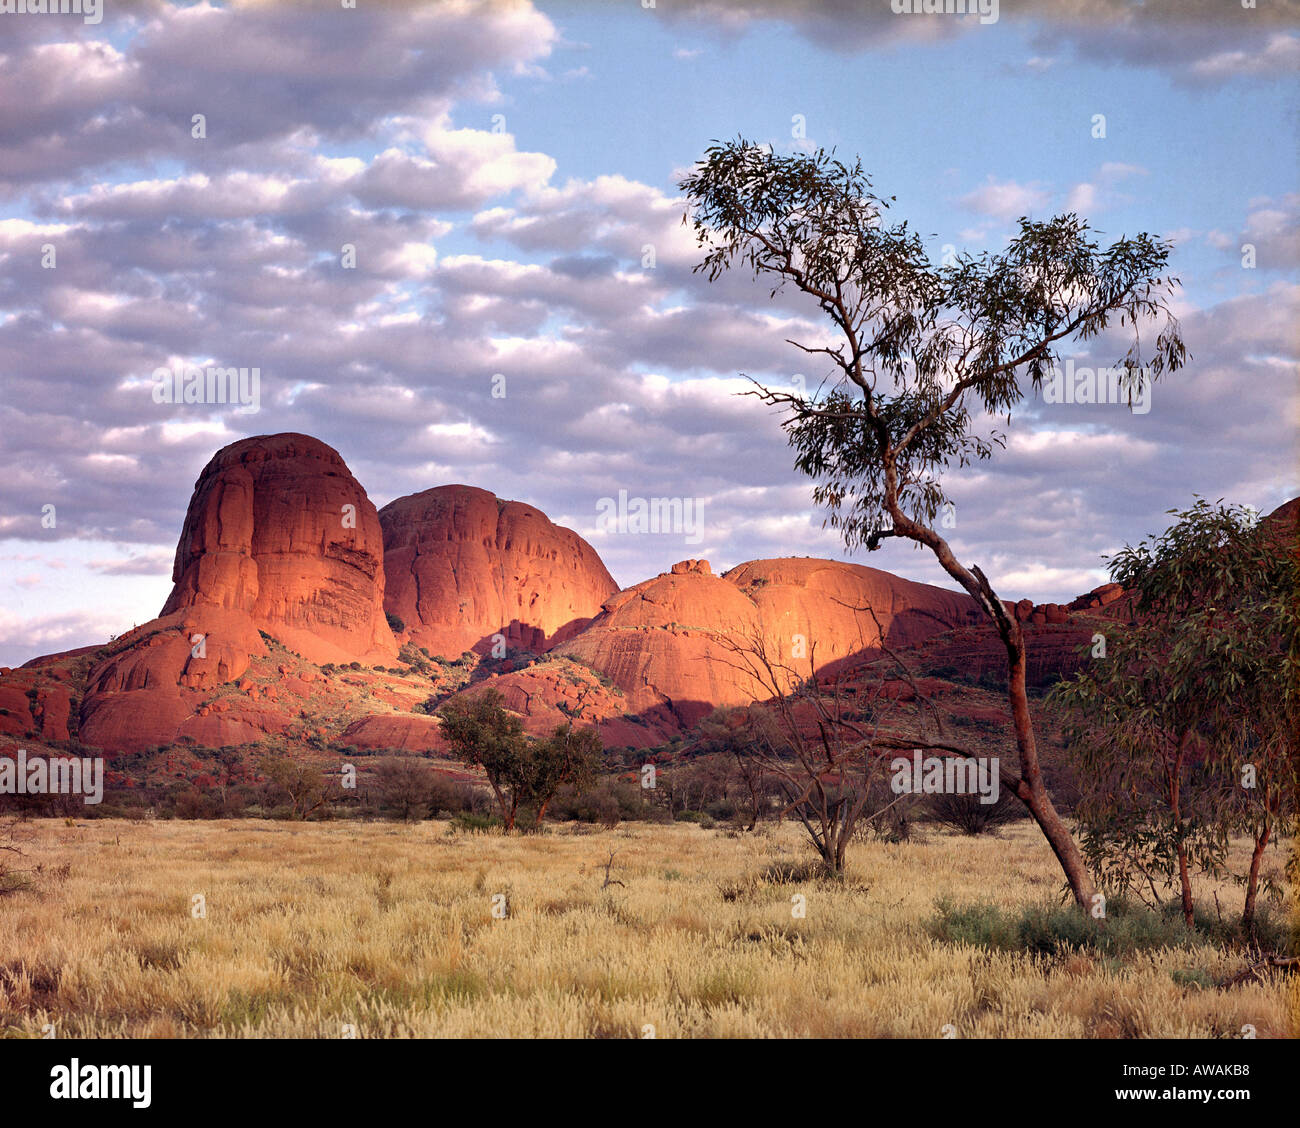 AU - Northern Territory:  The Olgas - Stock Image